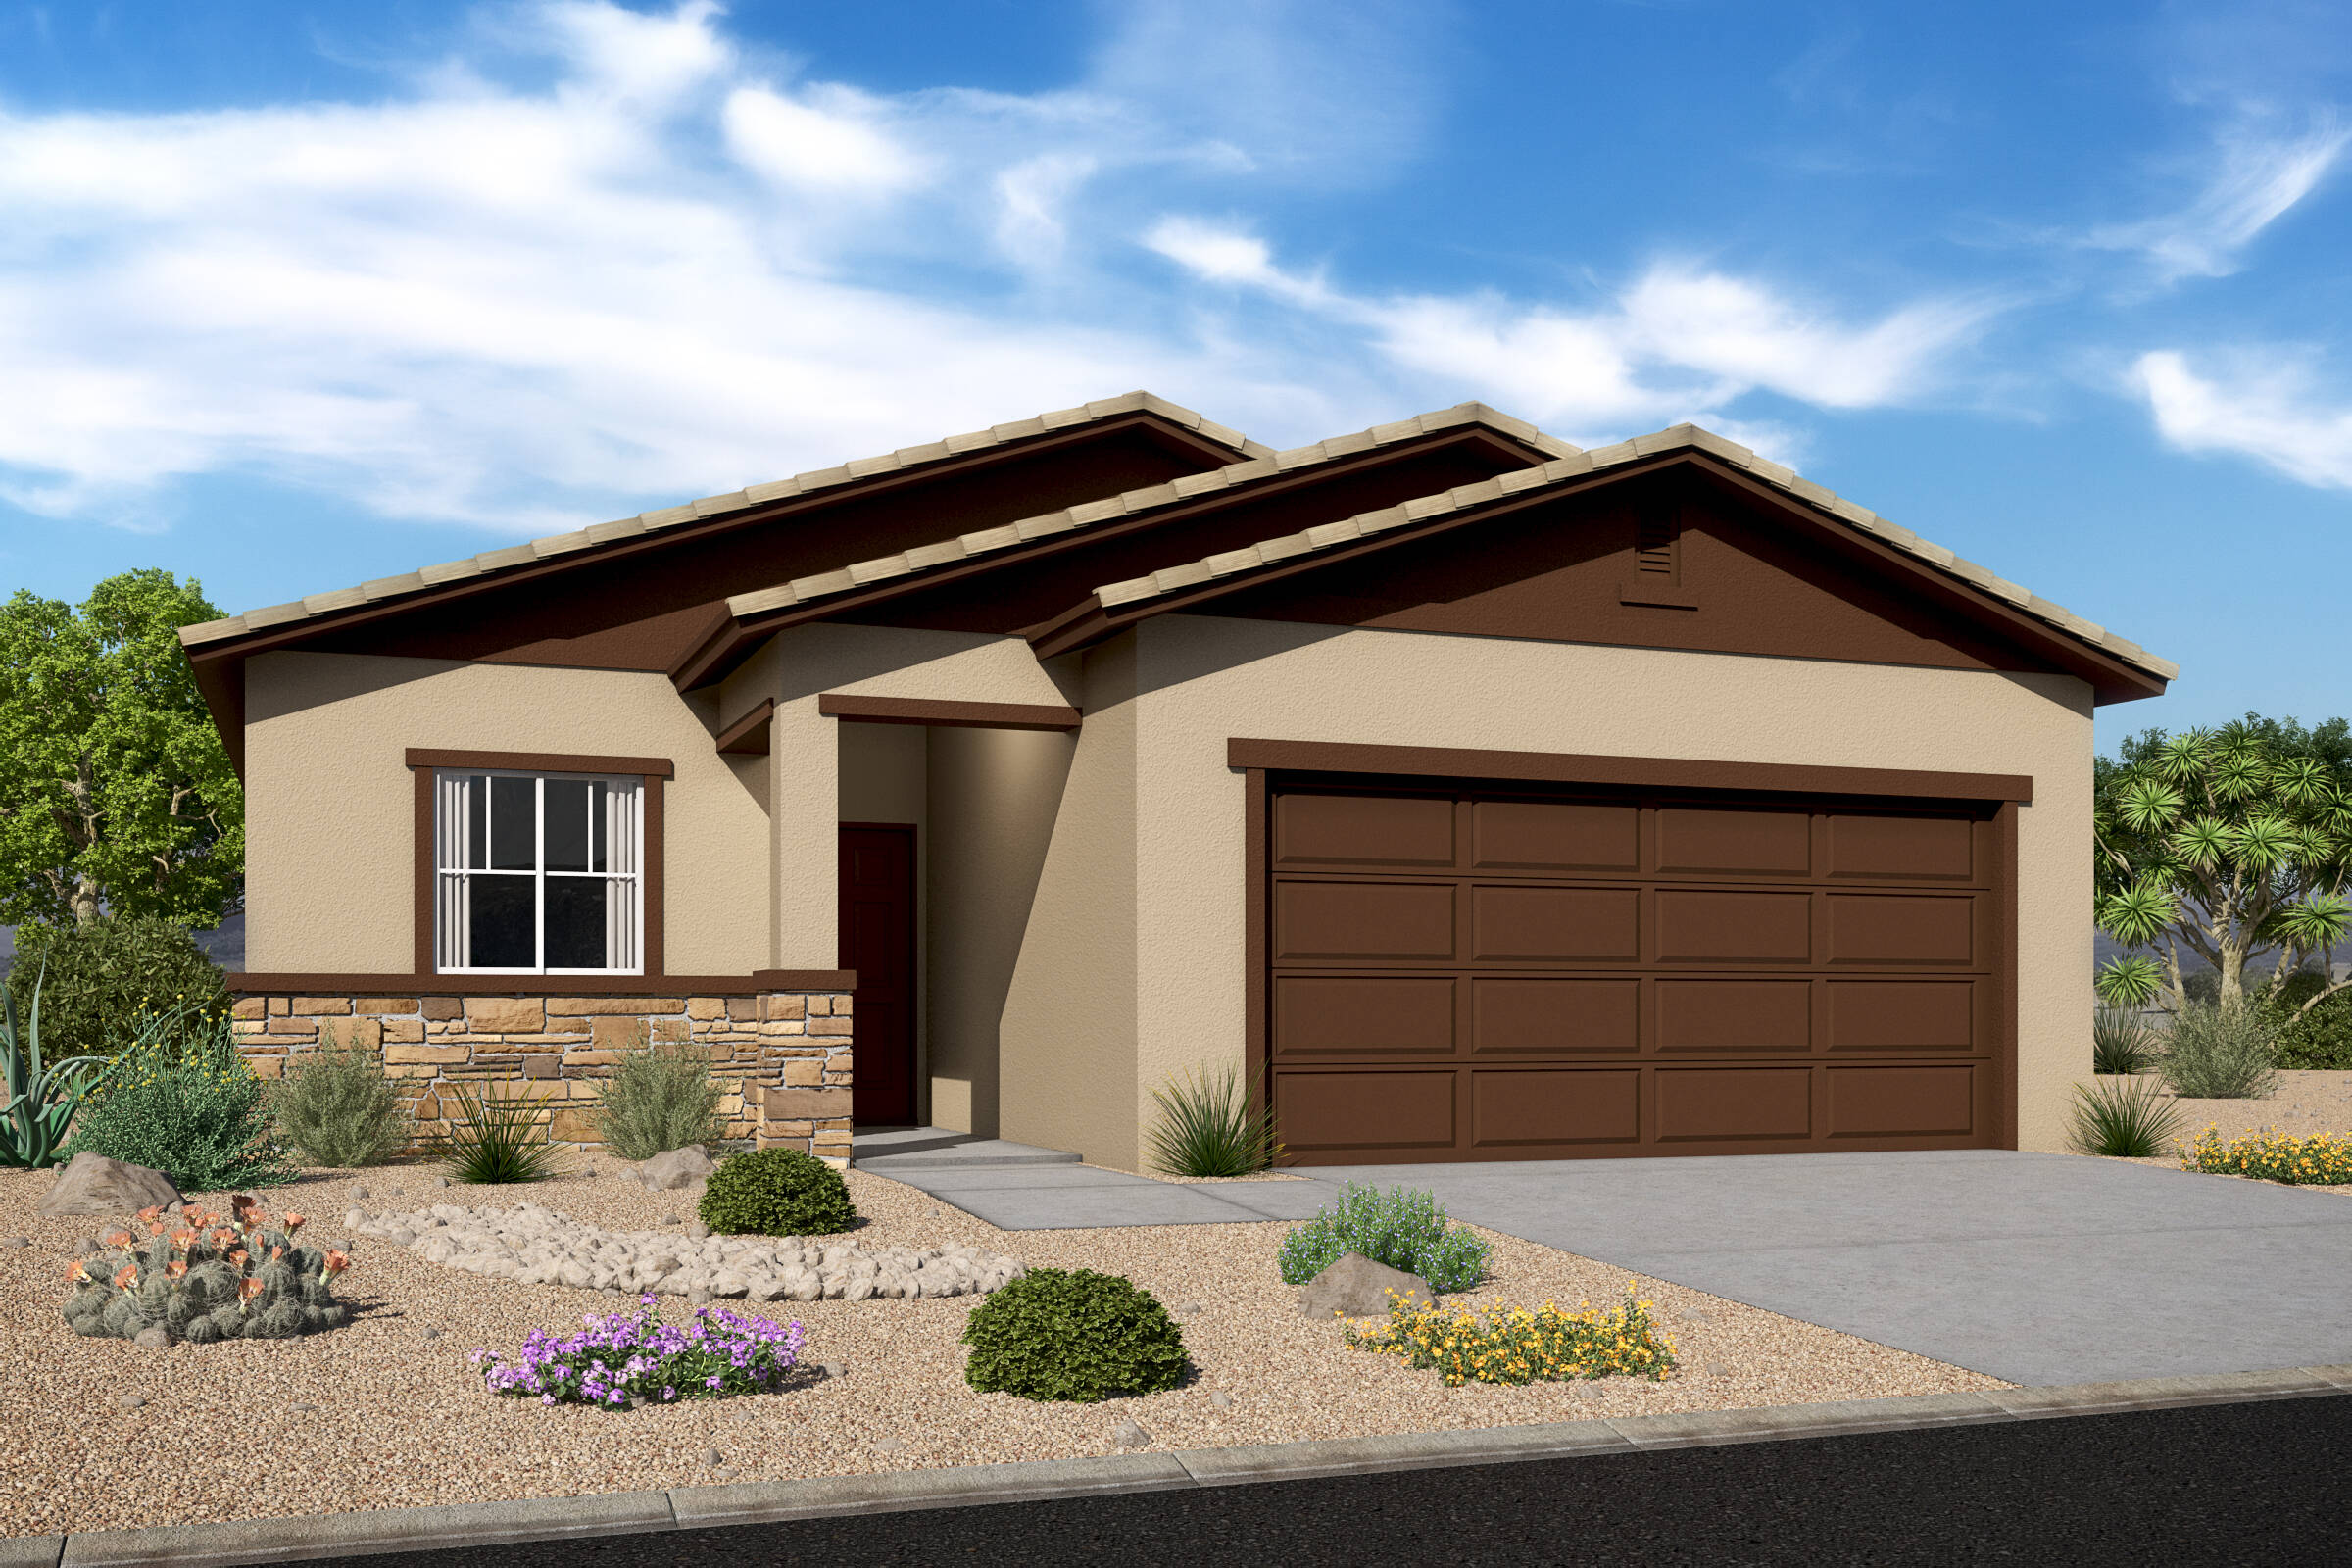 3570 bliss e craftsman new homes aspire at montana vista